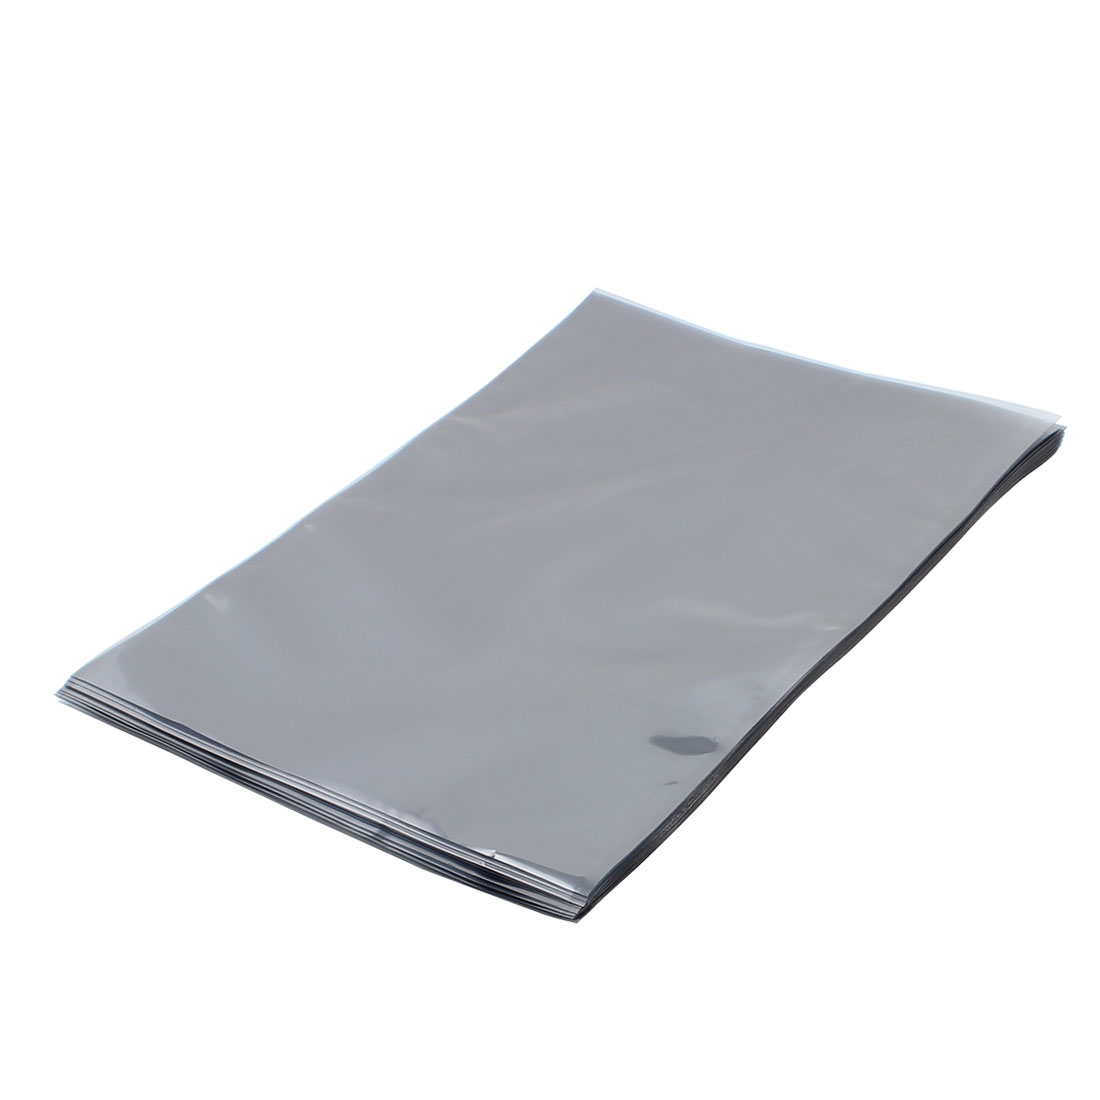 50 Pcs 250mm x 350mm Silver Tone Flat Open Top Anti Static Bag For Electronics